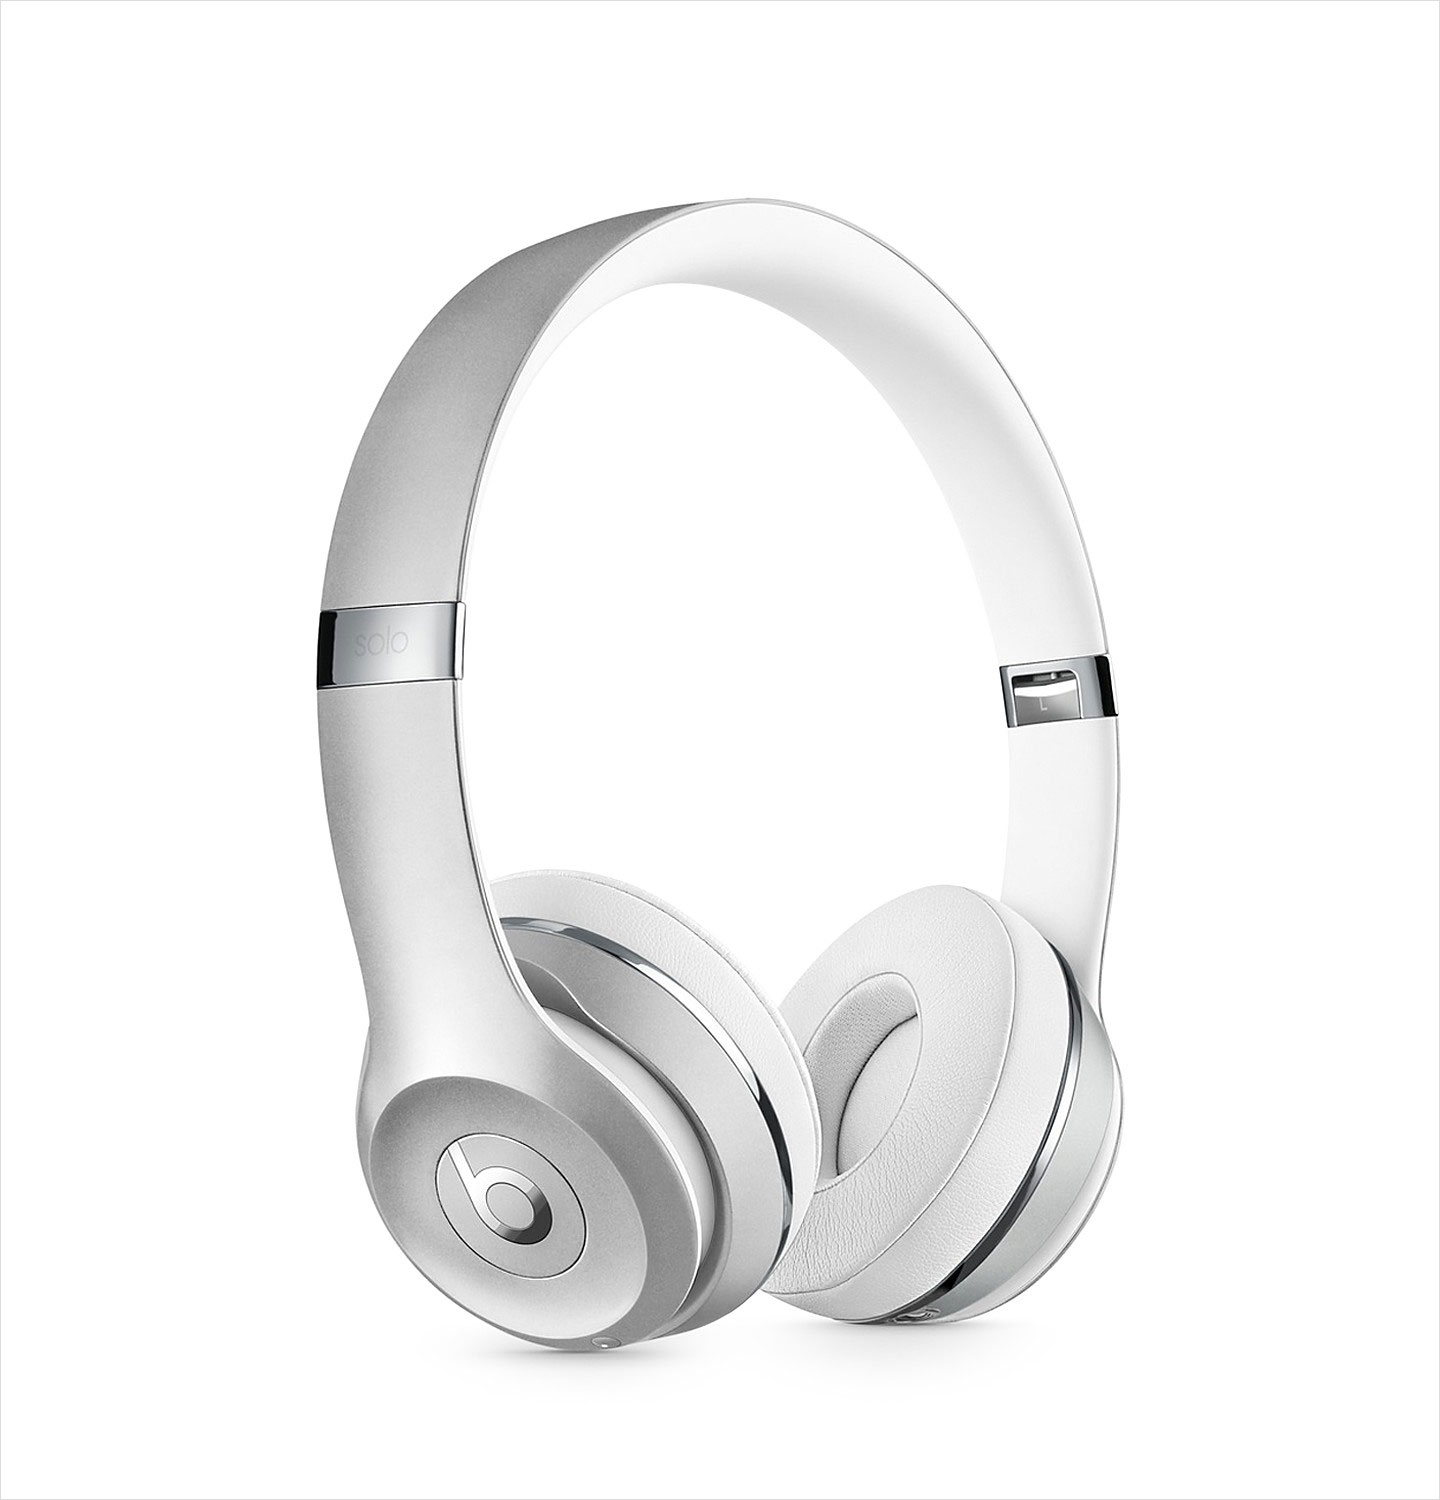 White silver beats by dr dre headphones solo 3 valentine's day gift ideas